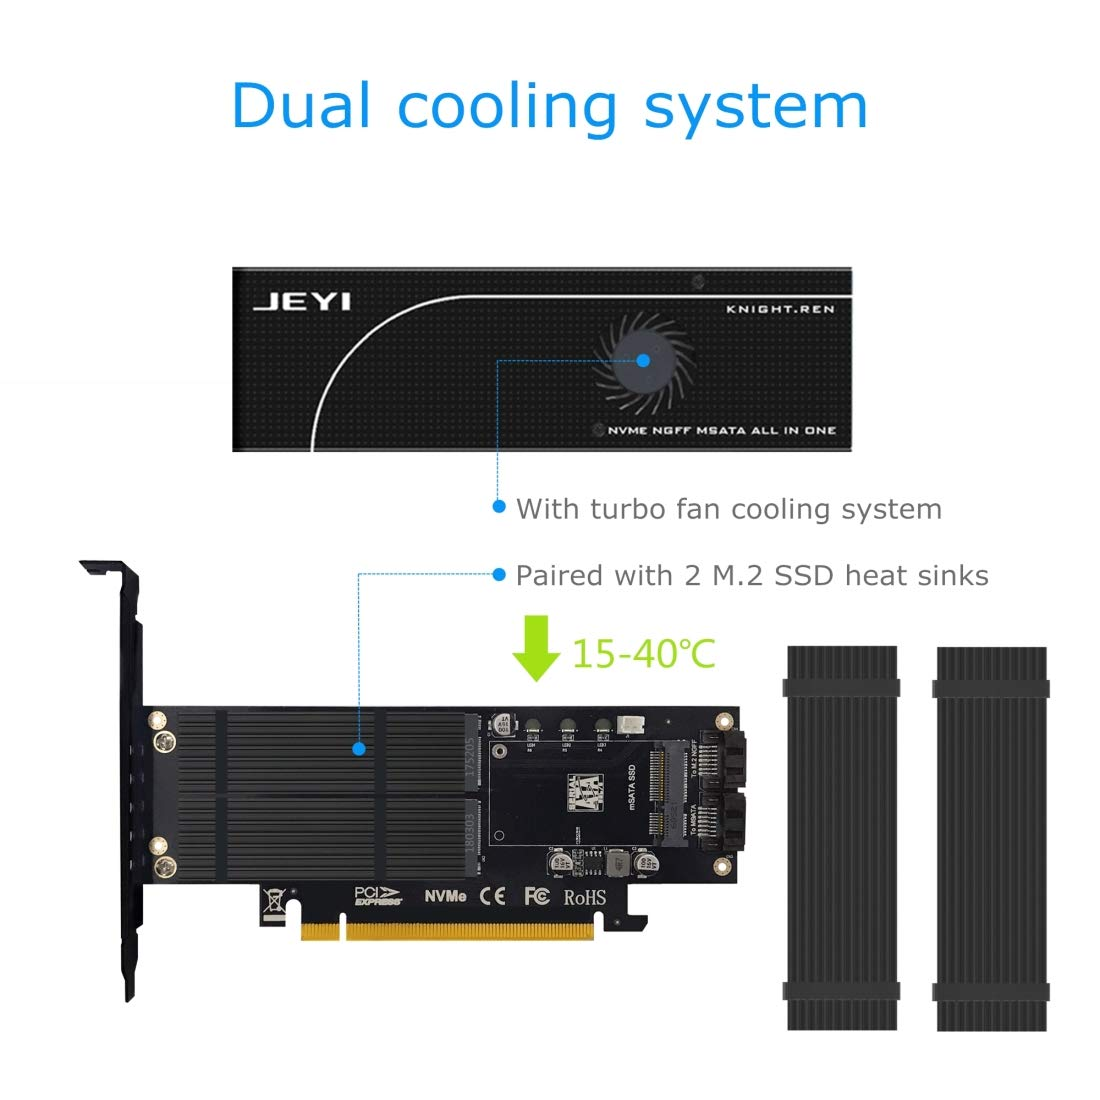 Amazon.com: Dual M.2 and mSATA SSD Adapter Cards for M.2 NVME and AHCI to PCIE, M.2 SATA-Based SSD to SATA, mSATA to SATA,3 in 1 SSD Expansion Card with ...